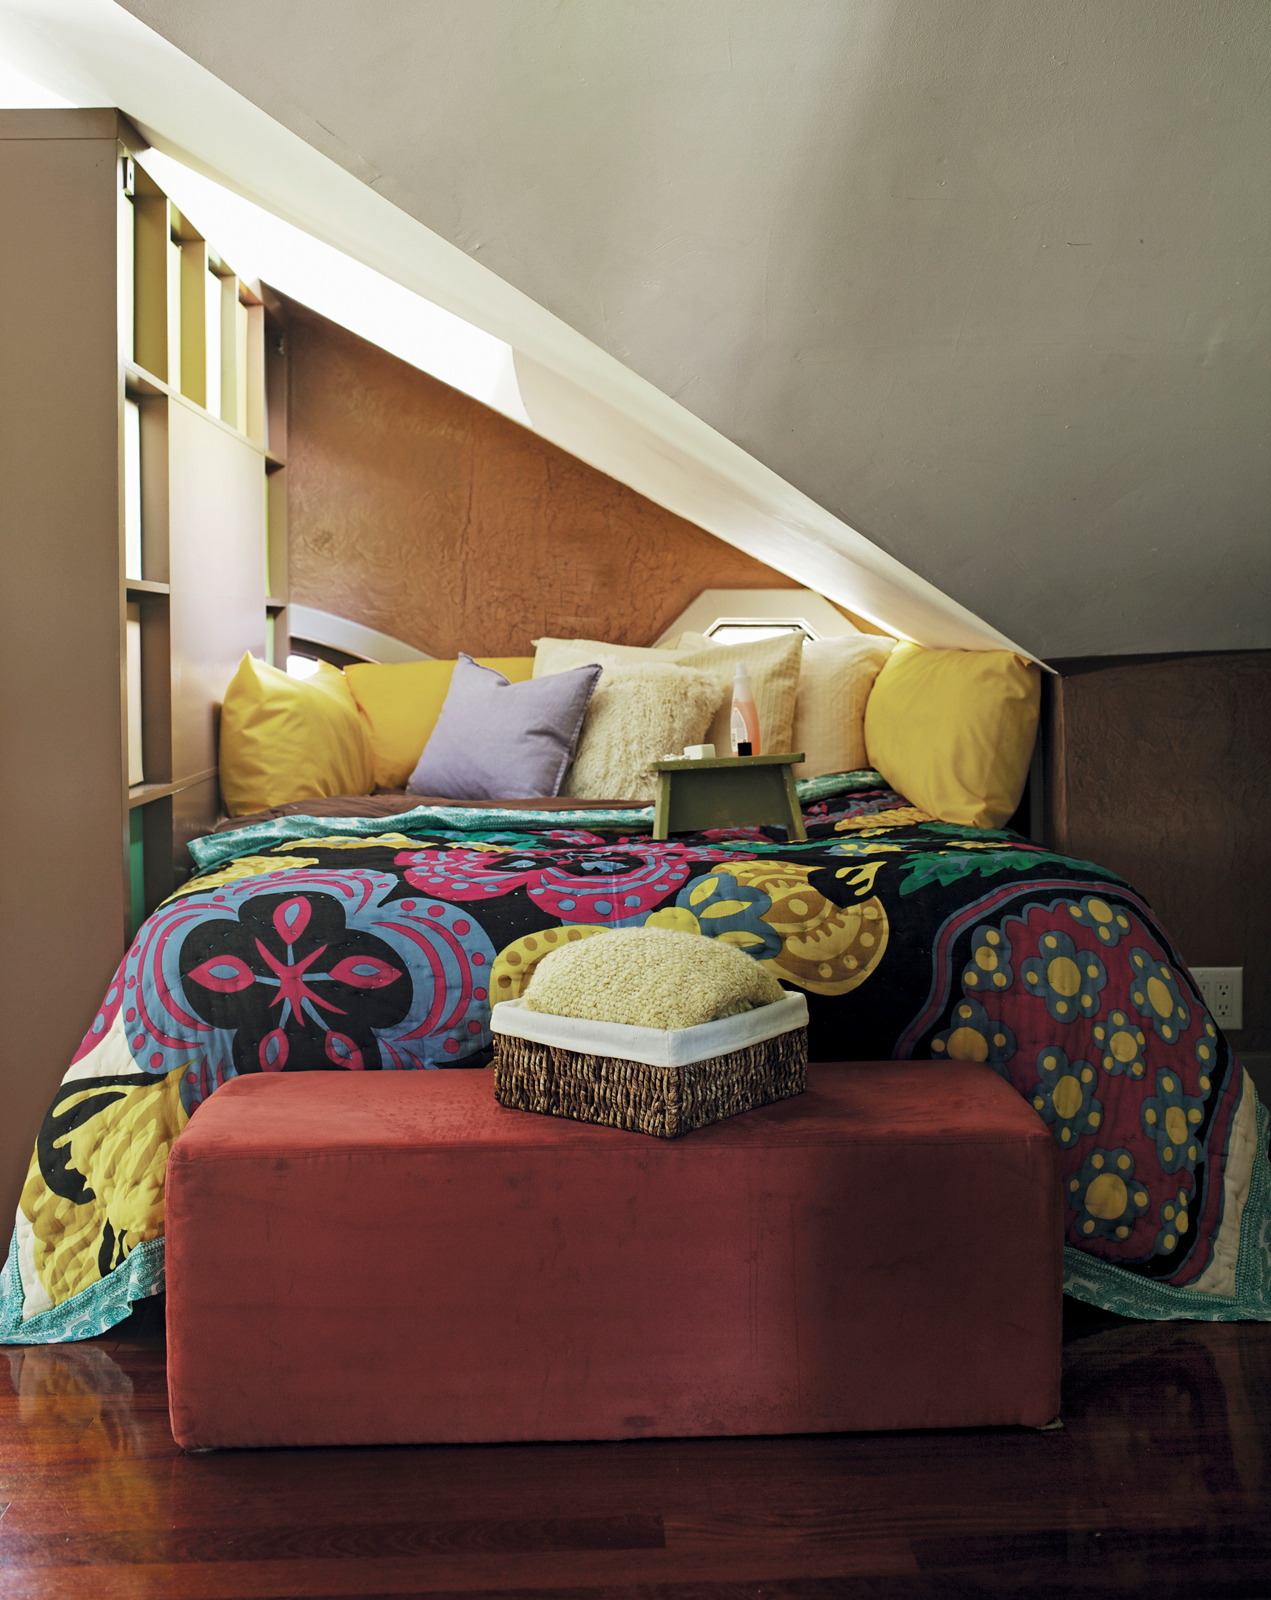 This top floor loft space in Atlanta has uneven ceilings and no walls, so Schuneman sectioned off a nook for her bed using a tall bookcase. Reprinted from The First Apartment Book by Kyle Schuneman. Copyright © 2012.  Published by Clarkson Potter, a divis